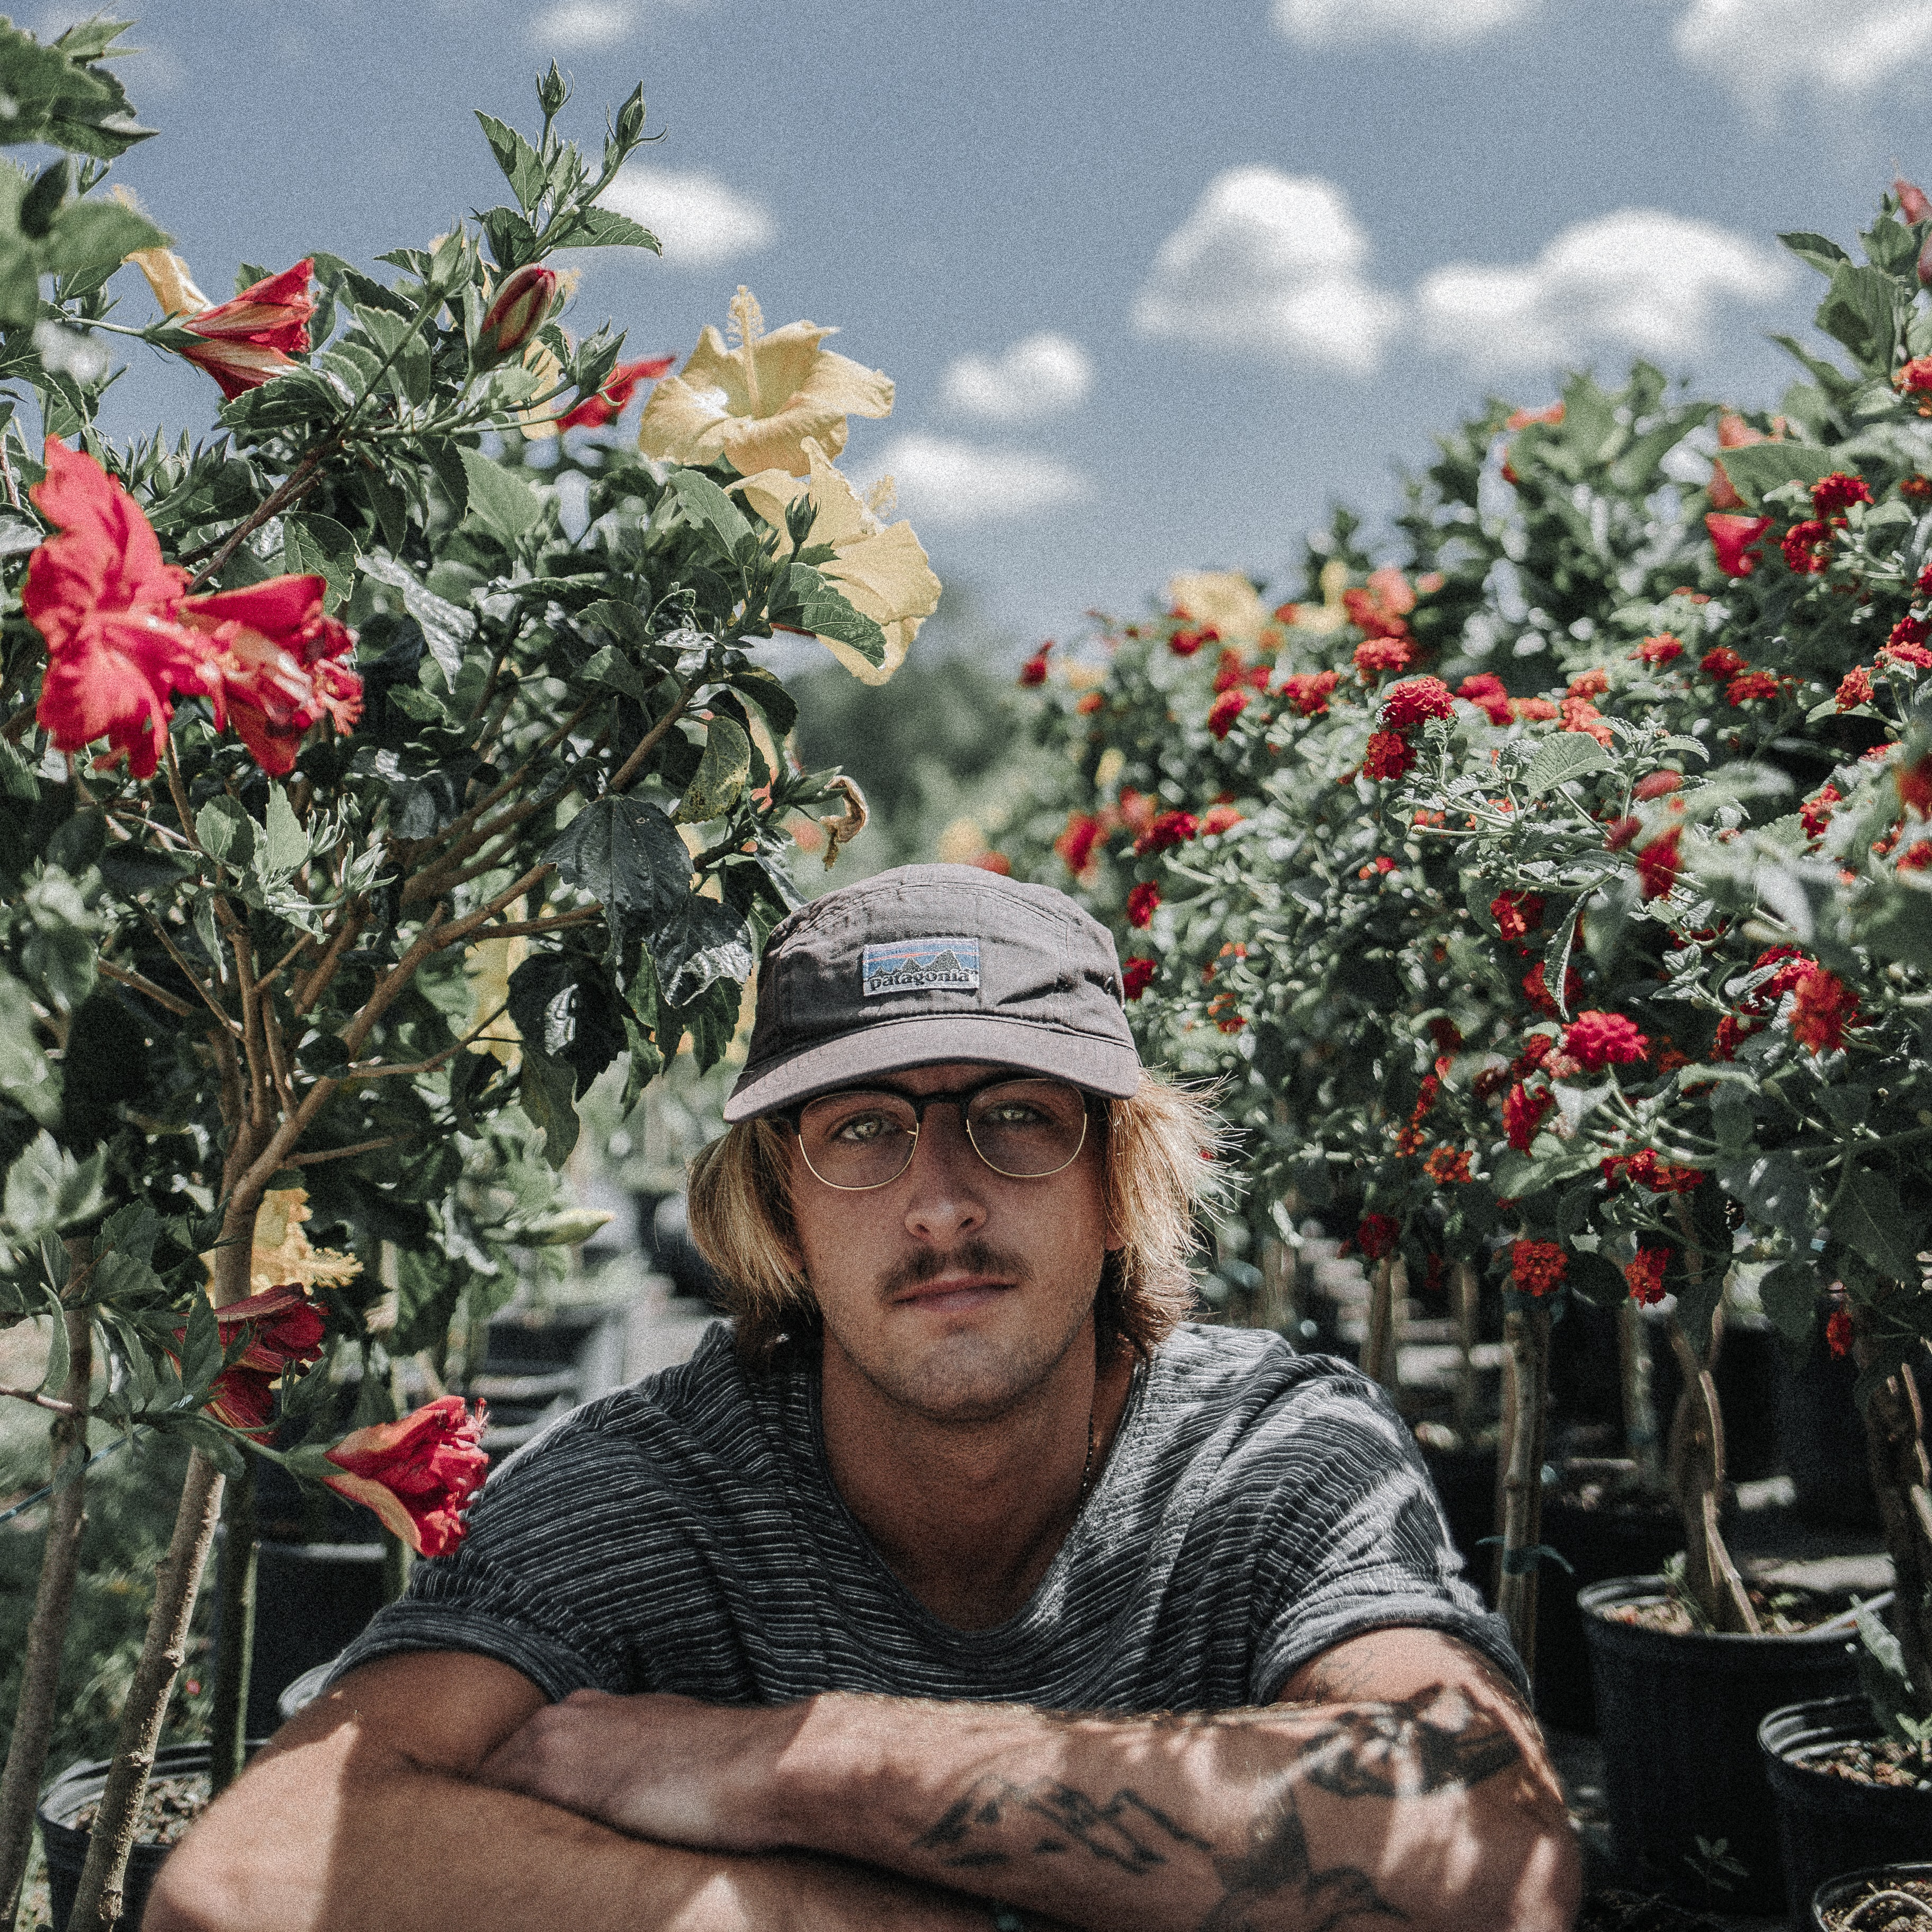 Man in a Patagonia hat and tattoos sitting by rows of flower bushes